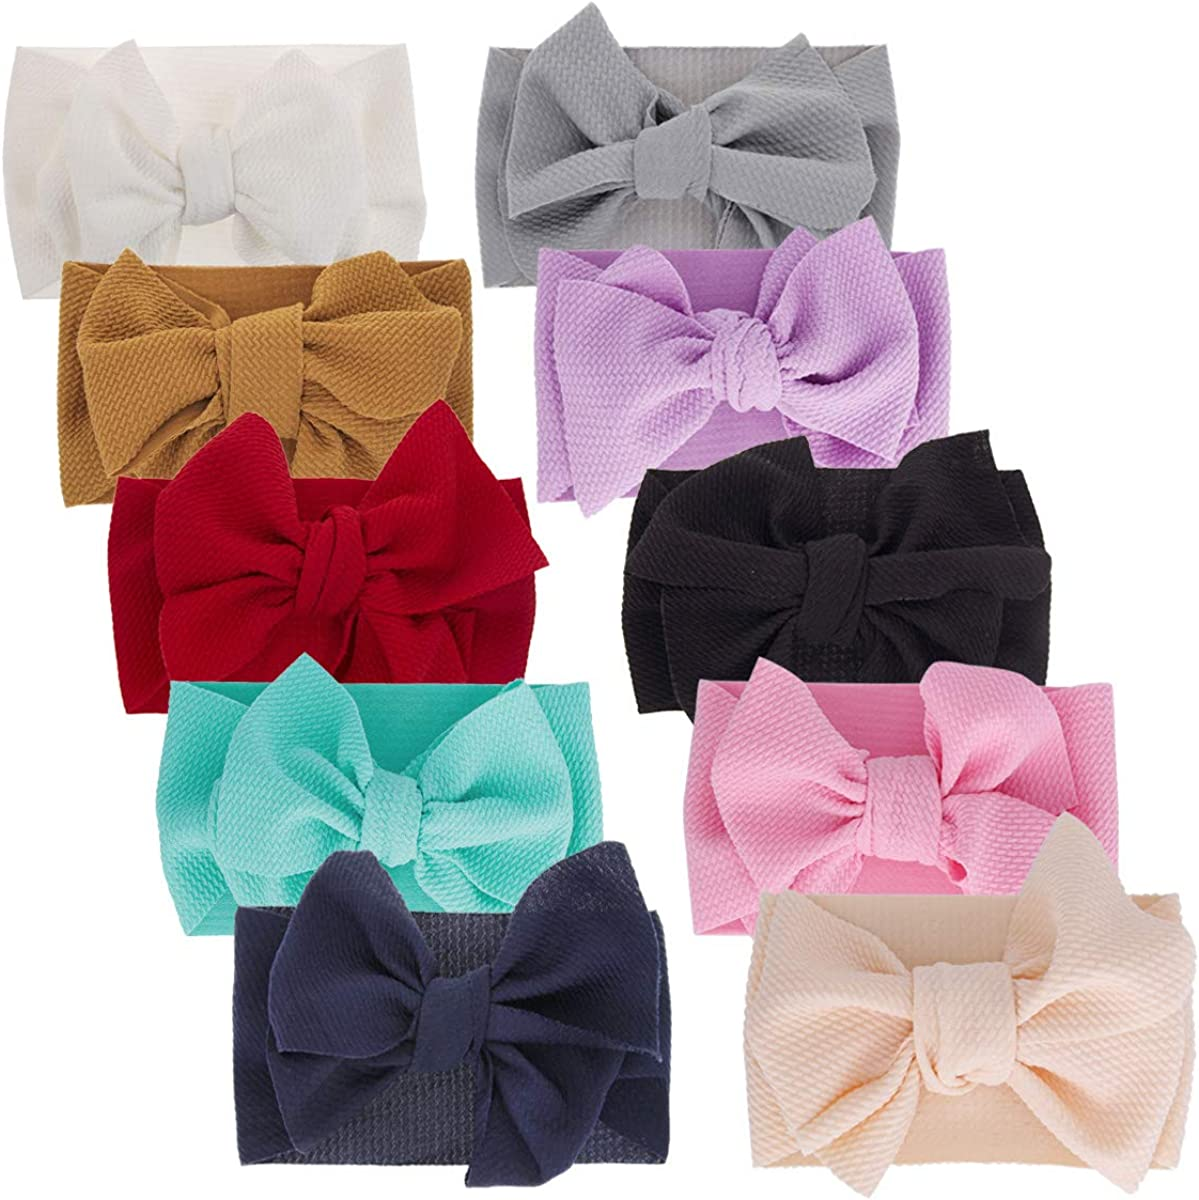 Big Hair Bow Baby Headbands Knot Headwrap bow headband Elastic Head Wraps for Newborn Infant Toddler Hair Accessories